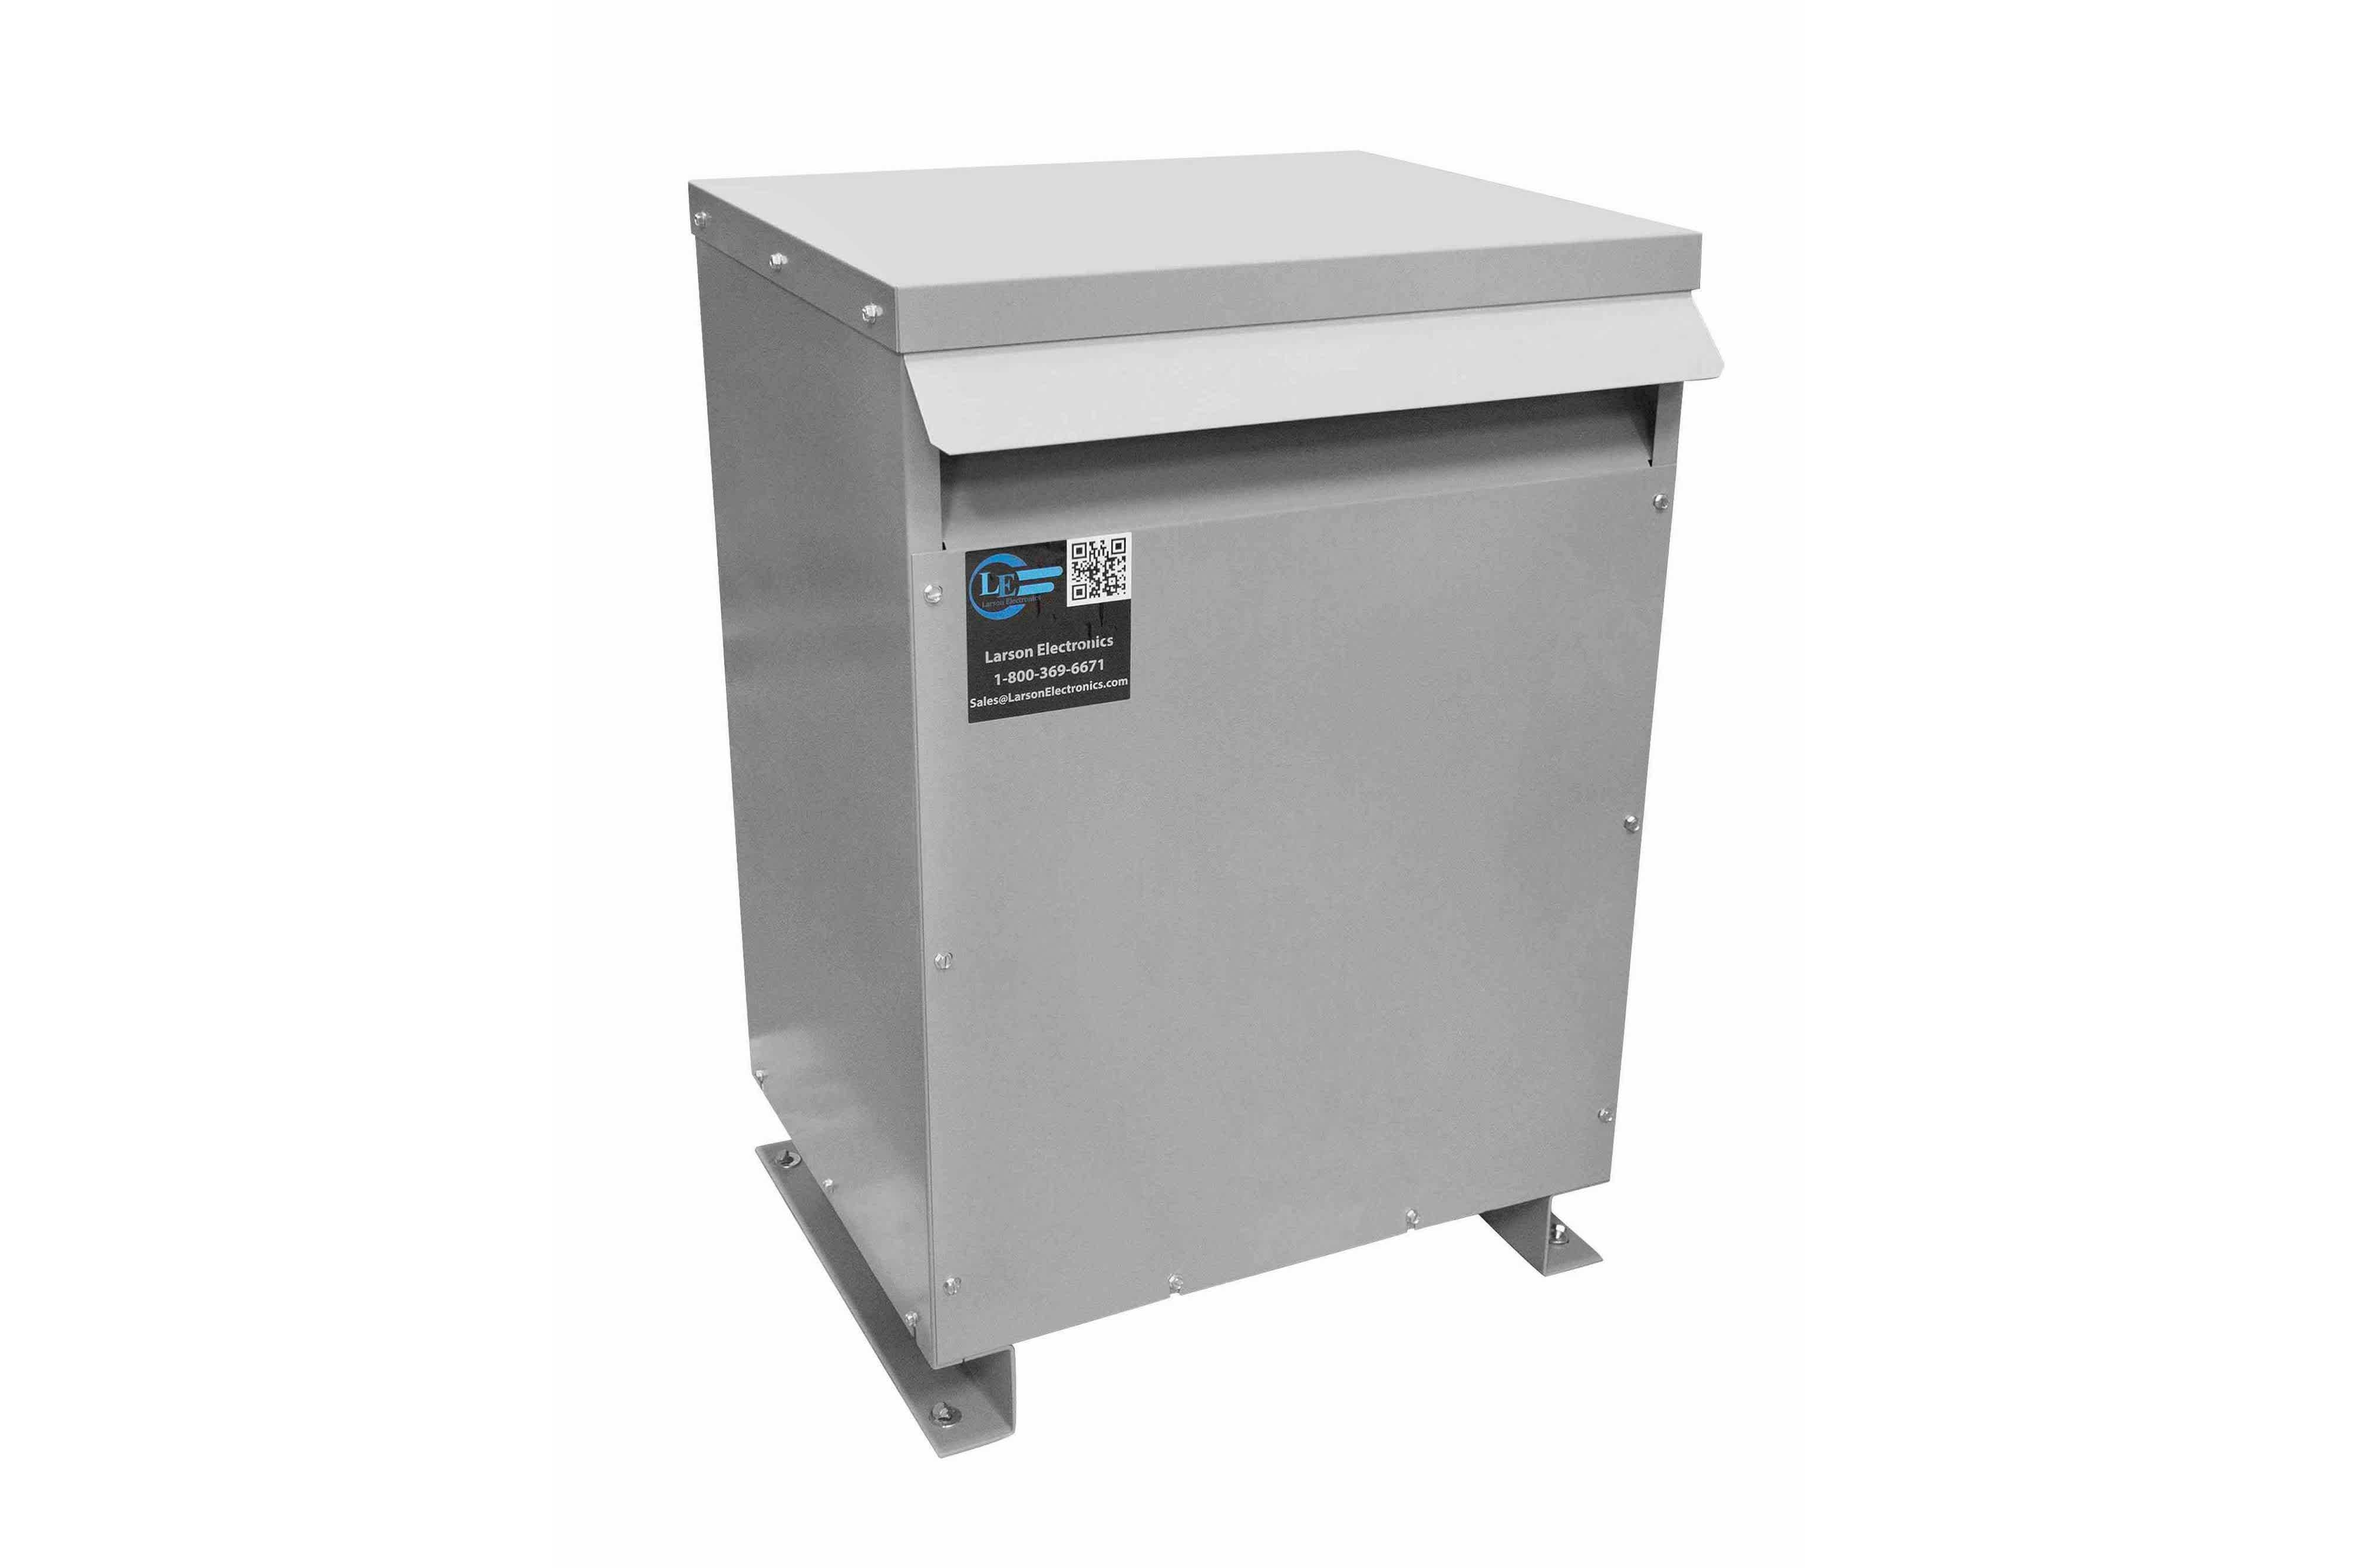 47.5 kVA 3PH Isolation Transformer, 240V Delta Primary, 600V Delta Secondary, N3R, Ventilated, 60 Hz